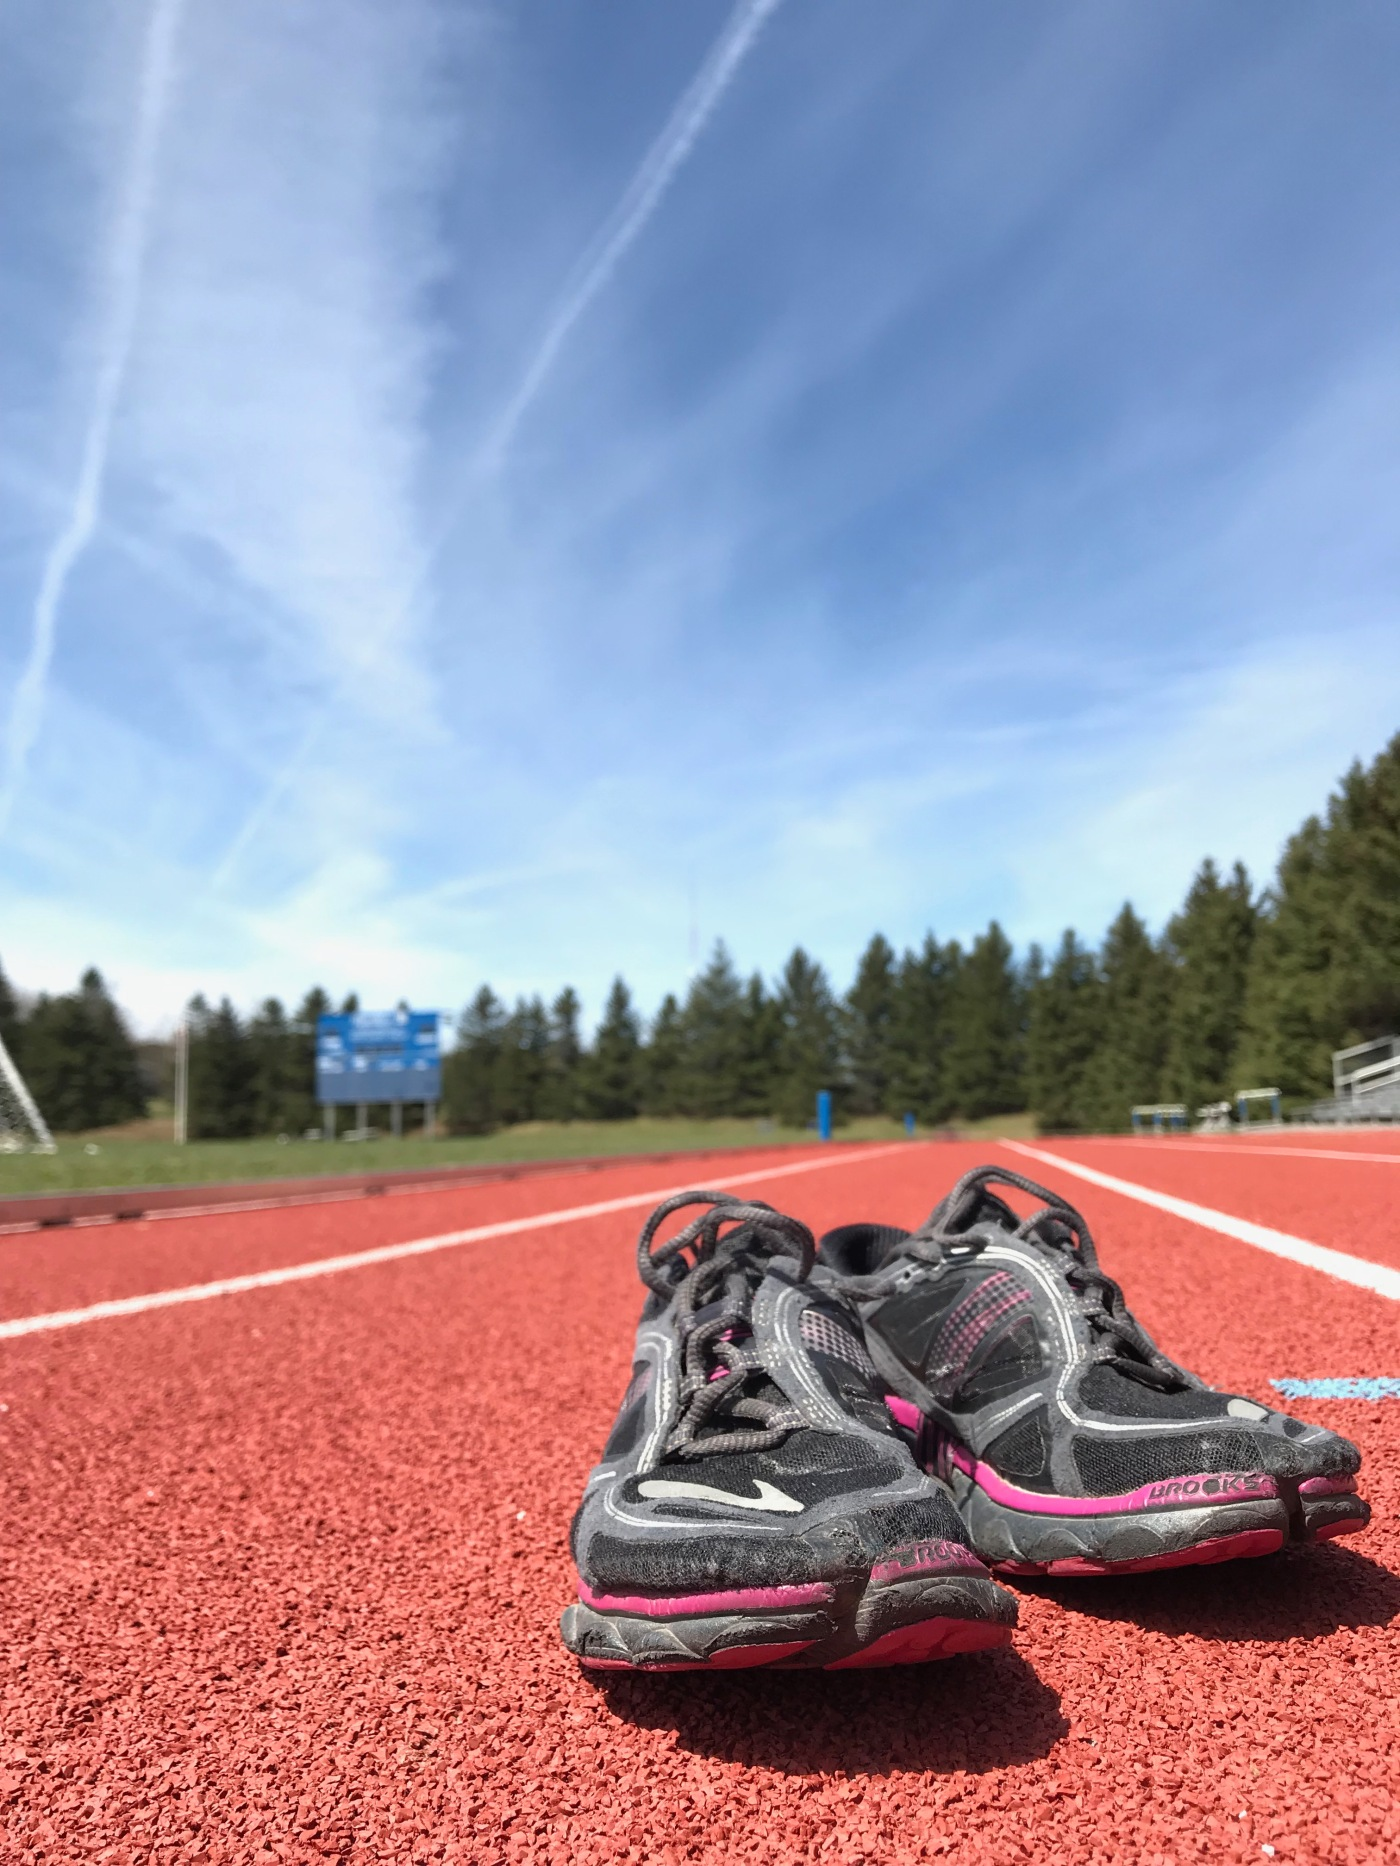 closeup of two sneakers on a red track surface, blue sky with pine trees in the distance